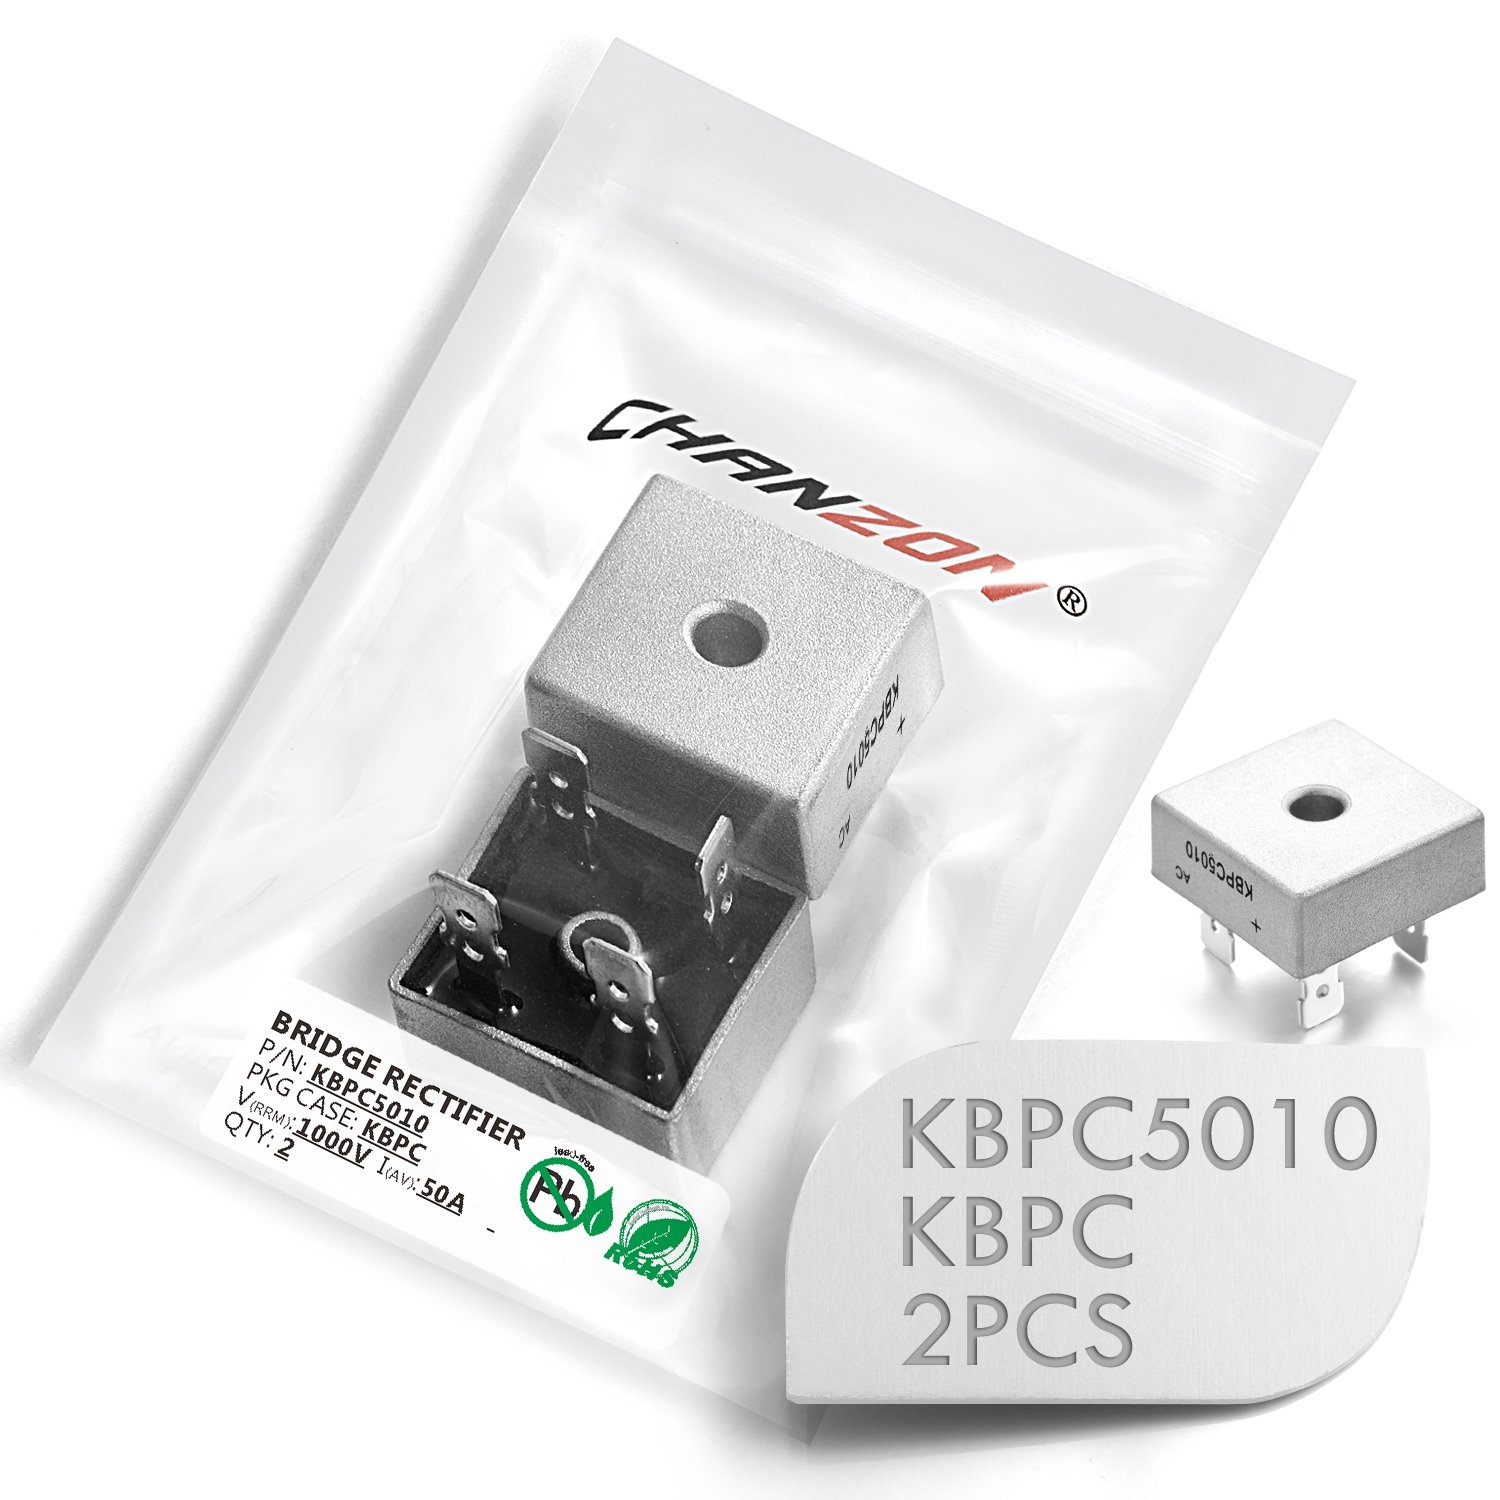 (Pack of 2 Pieces) Chanzon KBPC5010 Bridge Rectifier Diode 50A 1000V KBPC  Single Phase, Full Wave 50 Amp 1000 Volt Electronic Silicon Diodes:  Amazon.com: ...